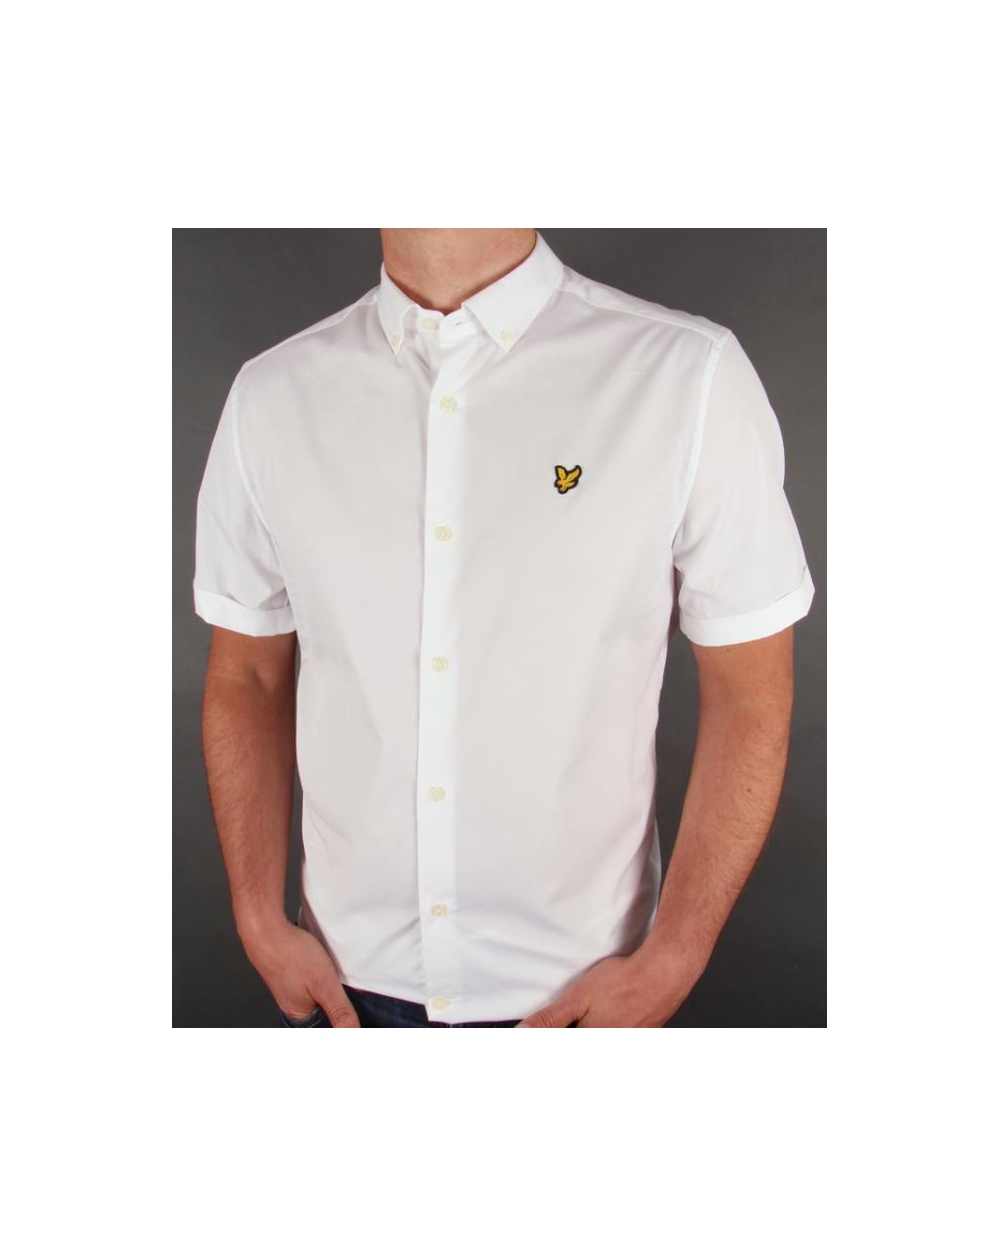 Lyle and scott poplin s s shirt white lyle and scott for Lyle and scott shirt sale